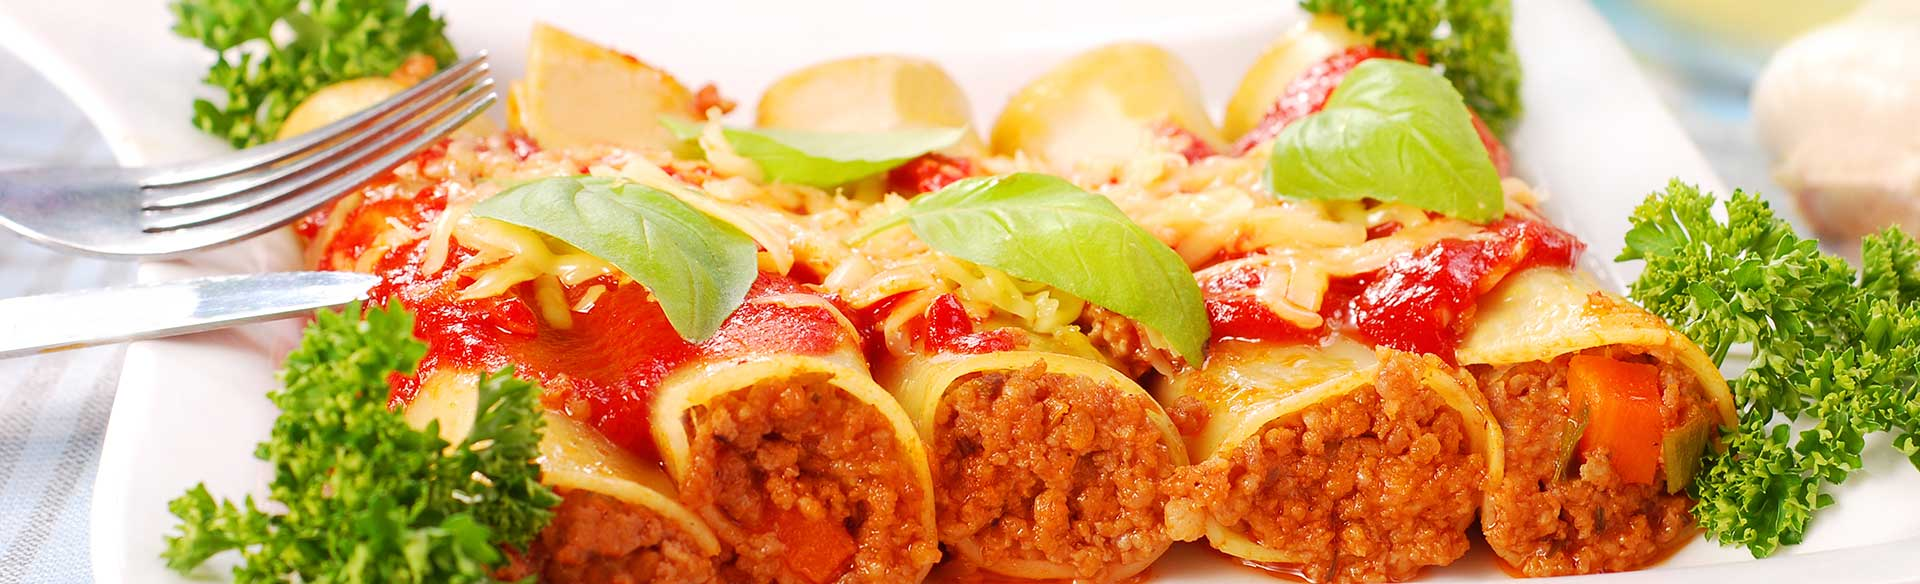 beef-cannelloni-plate